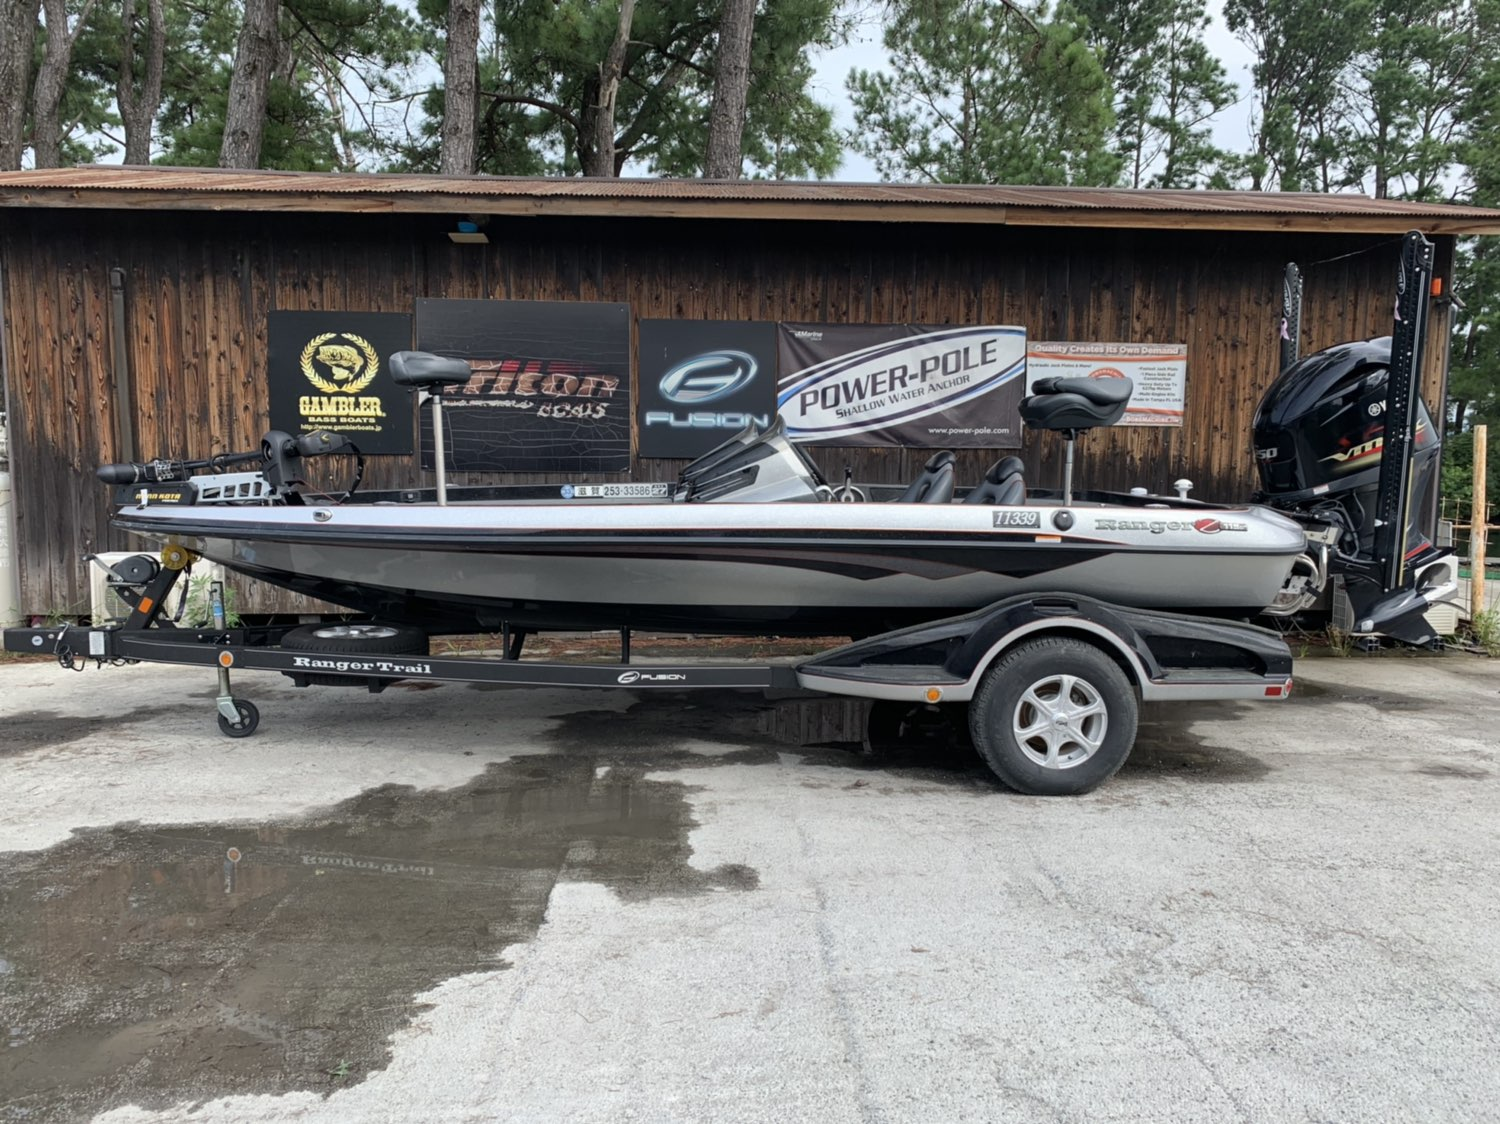 Sold out '15 Ranger Boats  Z119C with SHO250